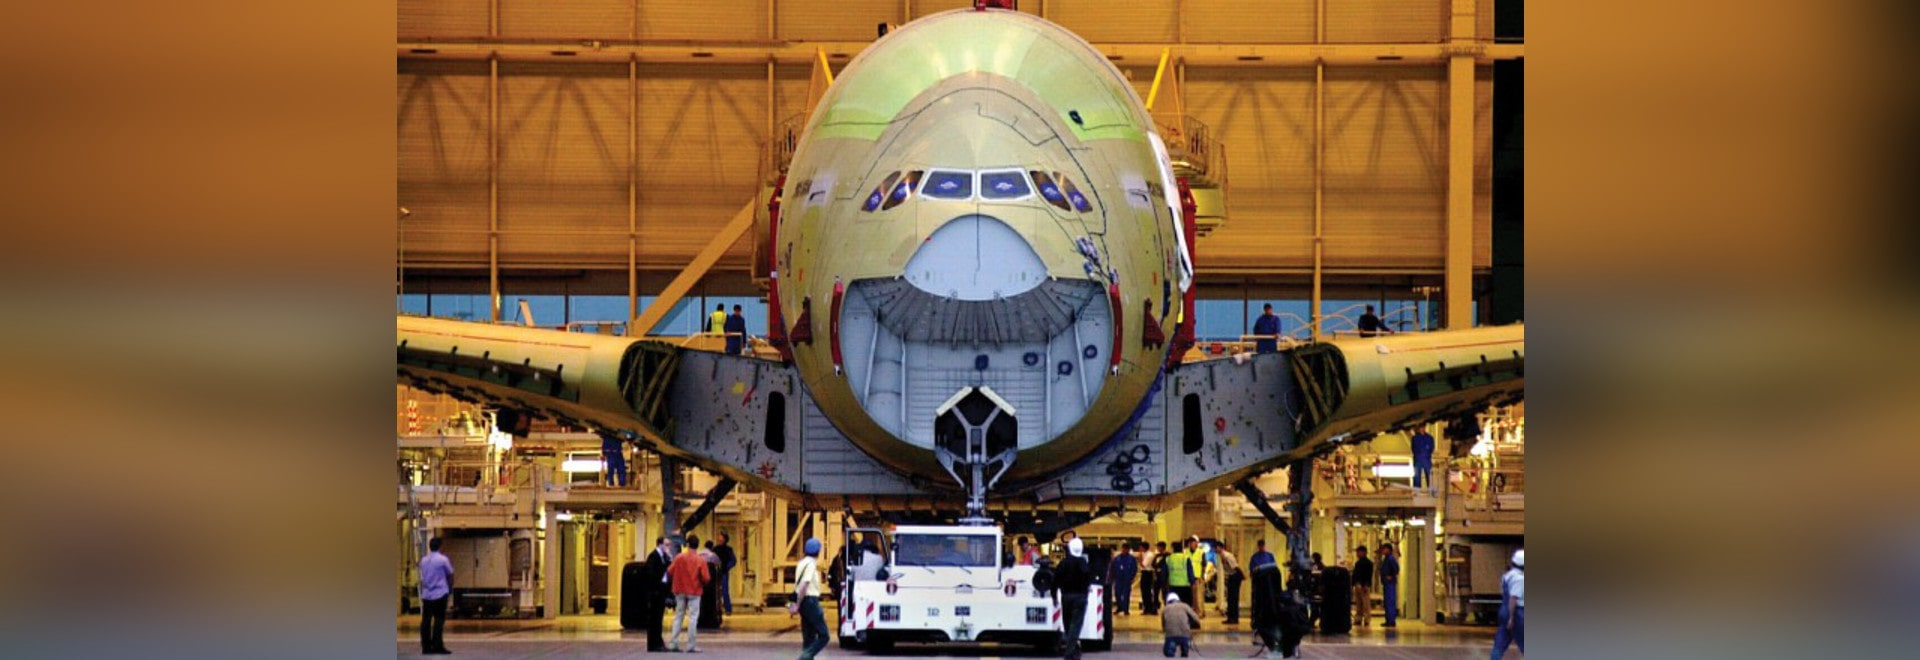 AIRBUS A380 – FROM CONCEPT TO REALITY